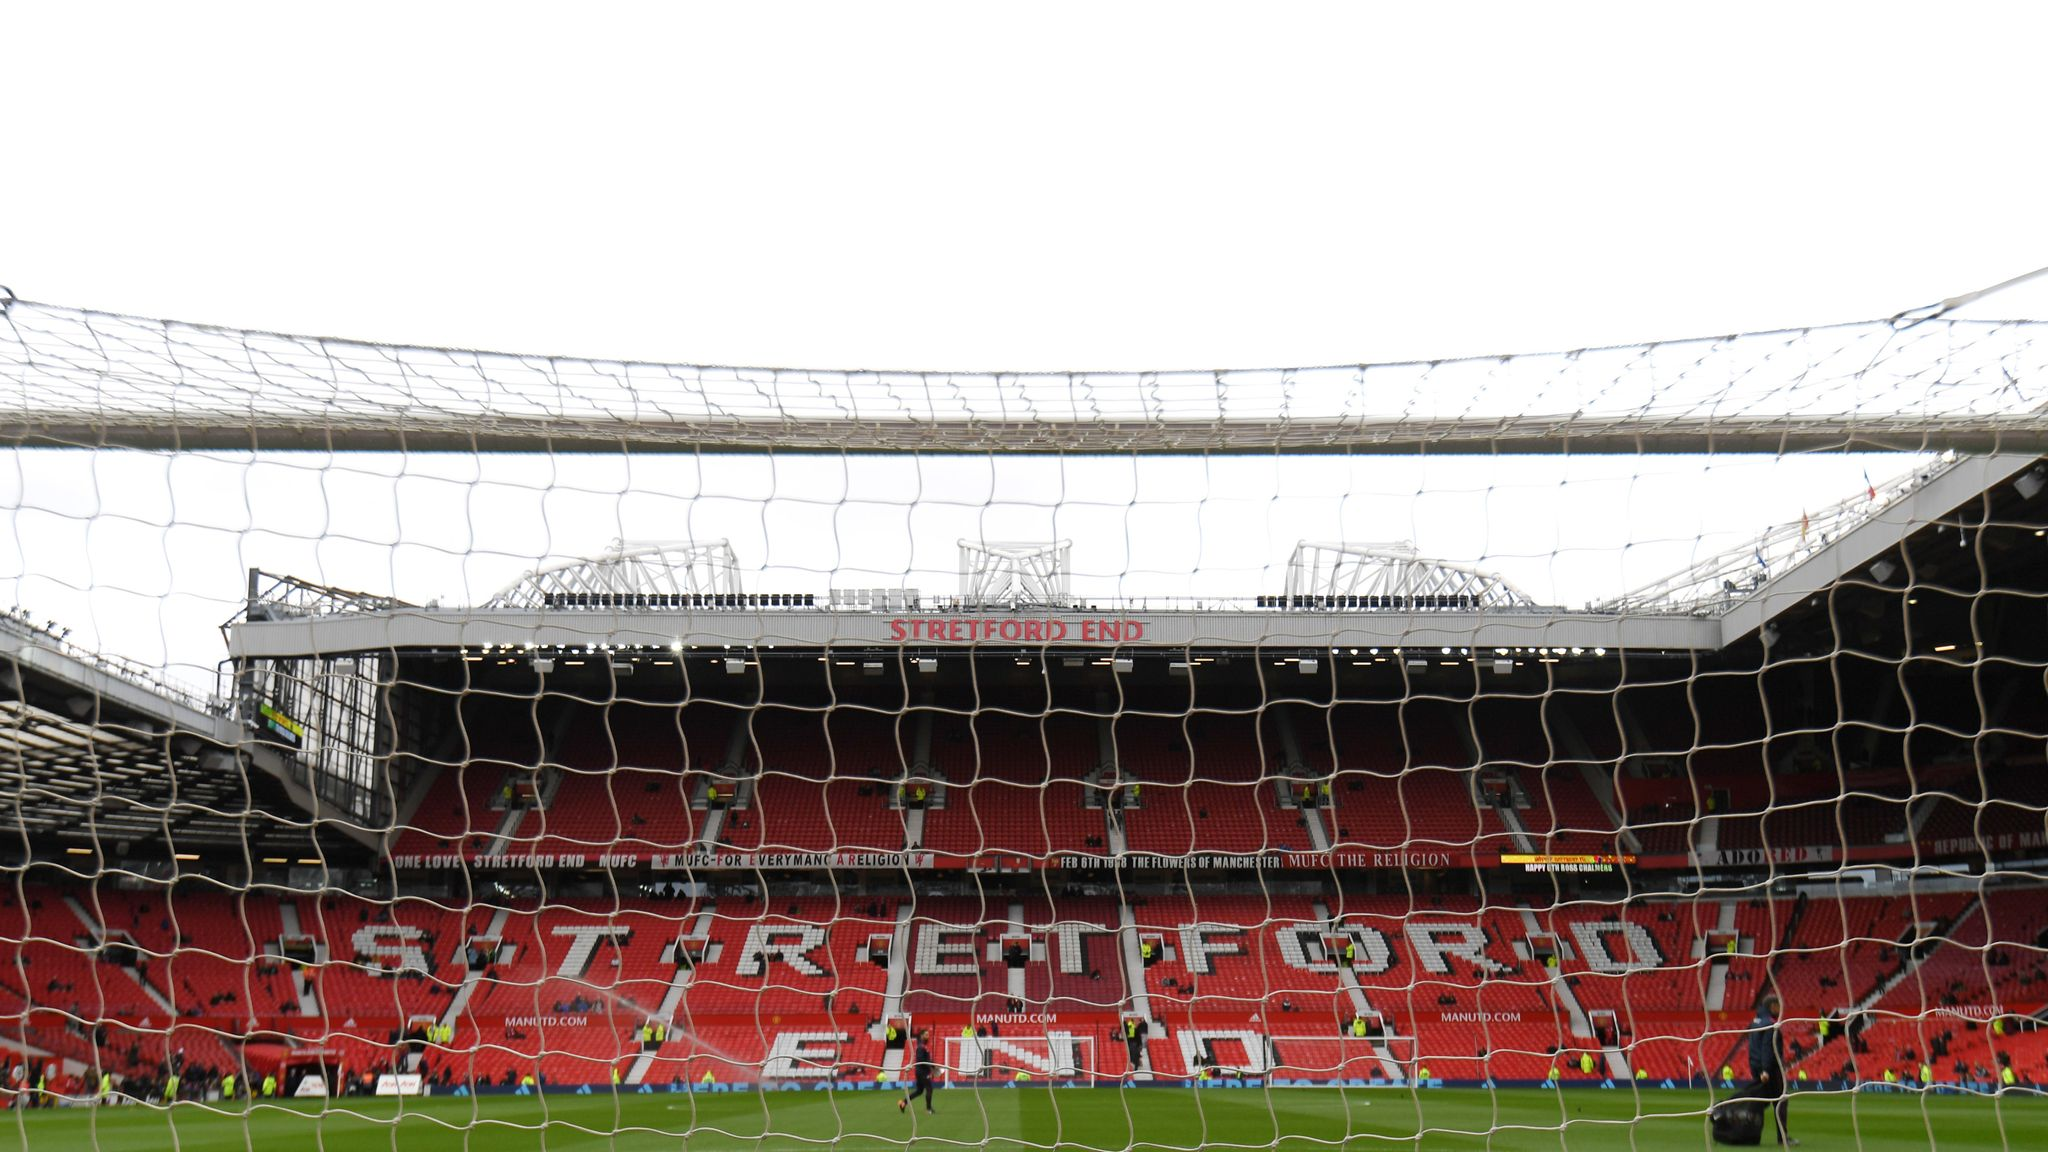 Manchester United freeze season ticket prices for eighth year